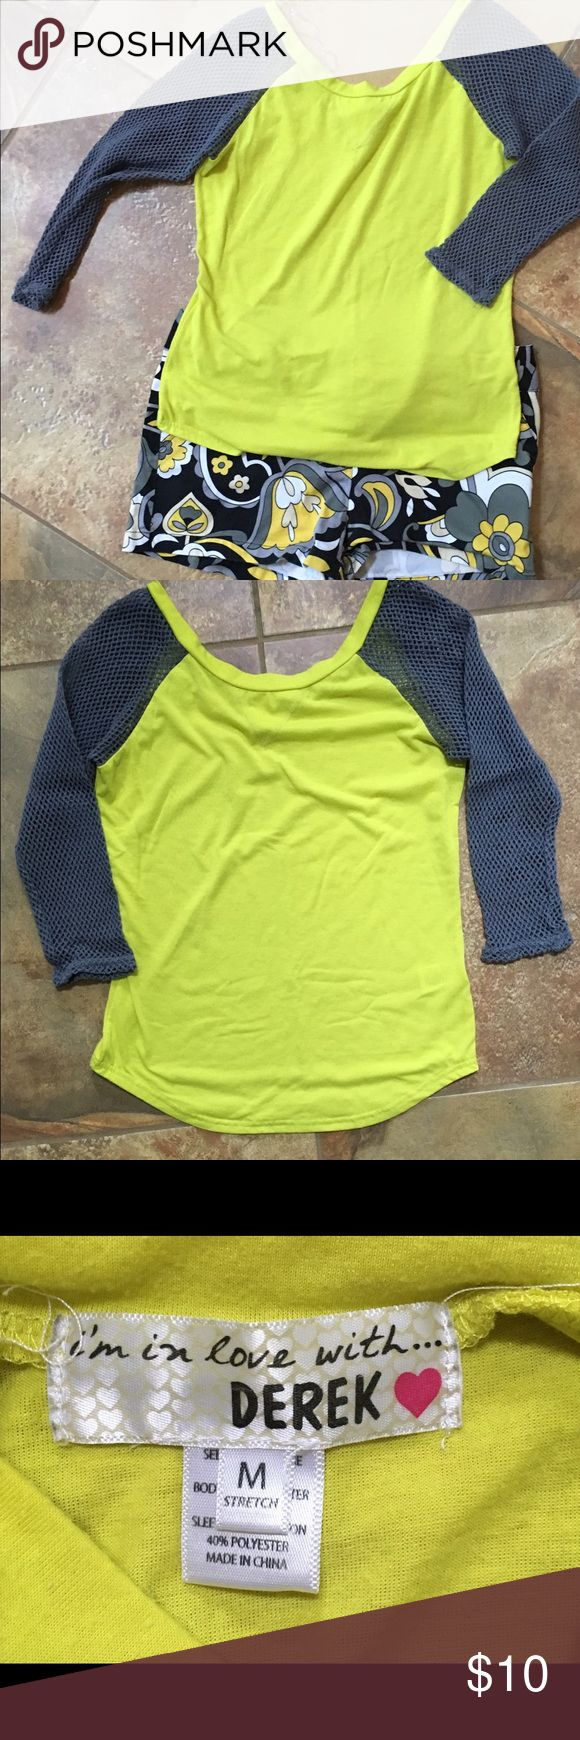 Neon yellow top with gray mesh sleeves Cute neon yellow top with gray mesh sleeves. Tops Tees - Long Sleeve